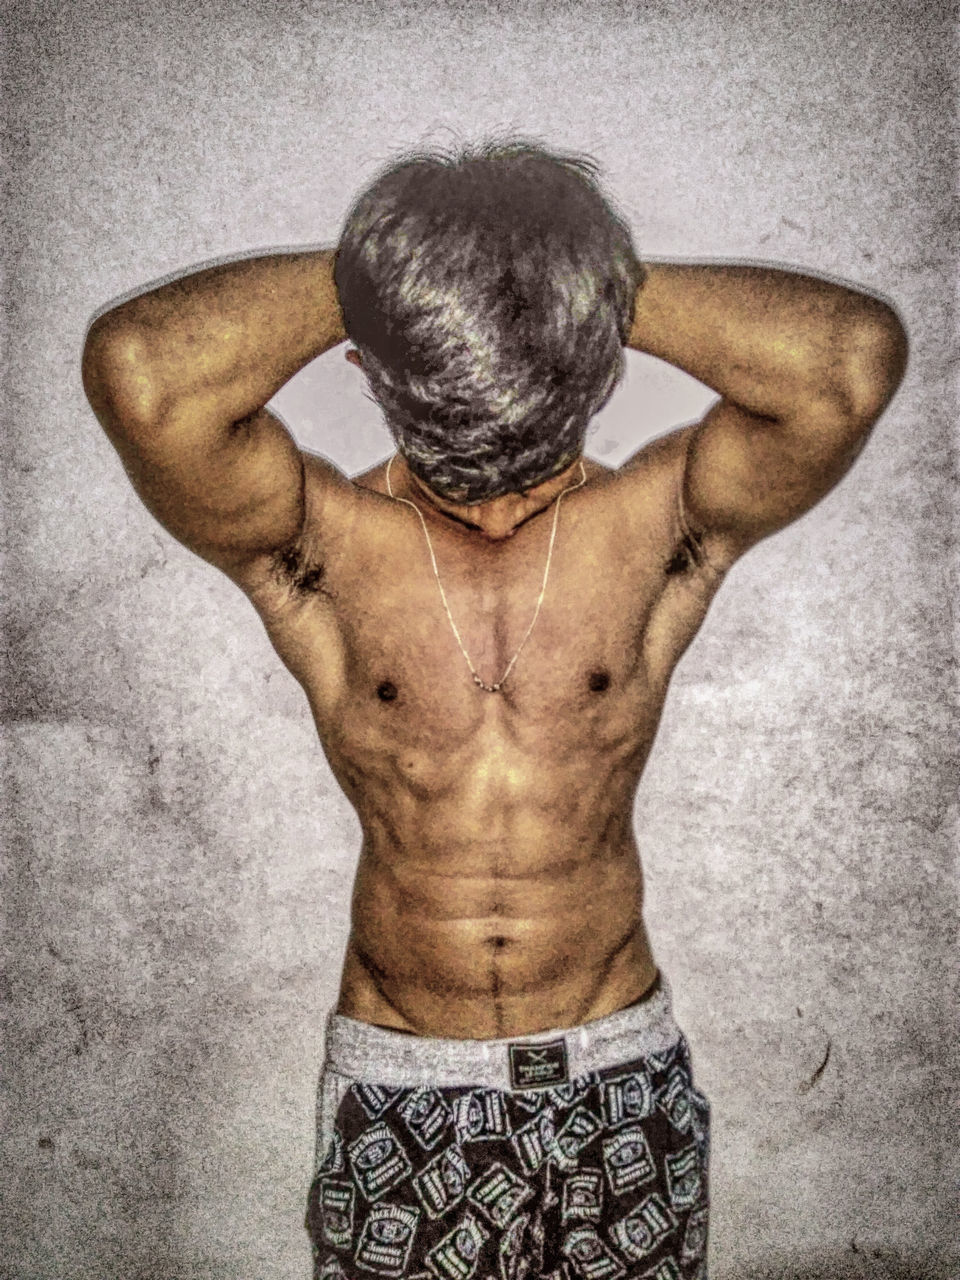 rear view, shirtless, human arm, one man only, muscular build, human back, human body part, only men, studio shot, one person, the human body, back, strength, men, gray background, adult, standing, adults only, hands behind head, people, macho, human hand, indoors, close-up, masculinity, sportsman, athlete, day